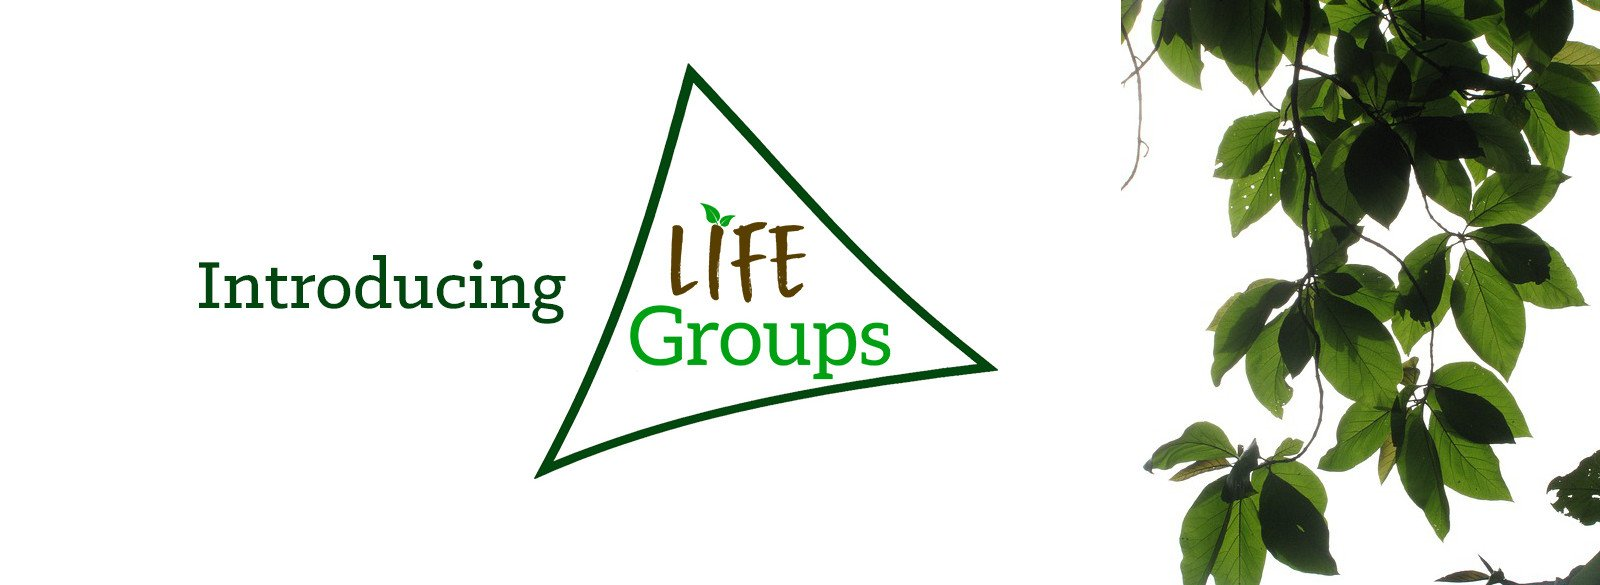 Life Groups Banner Image